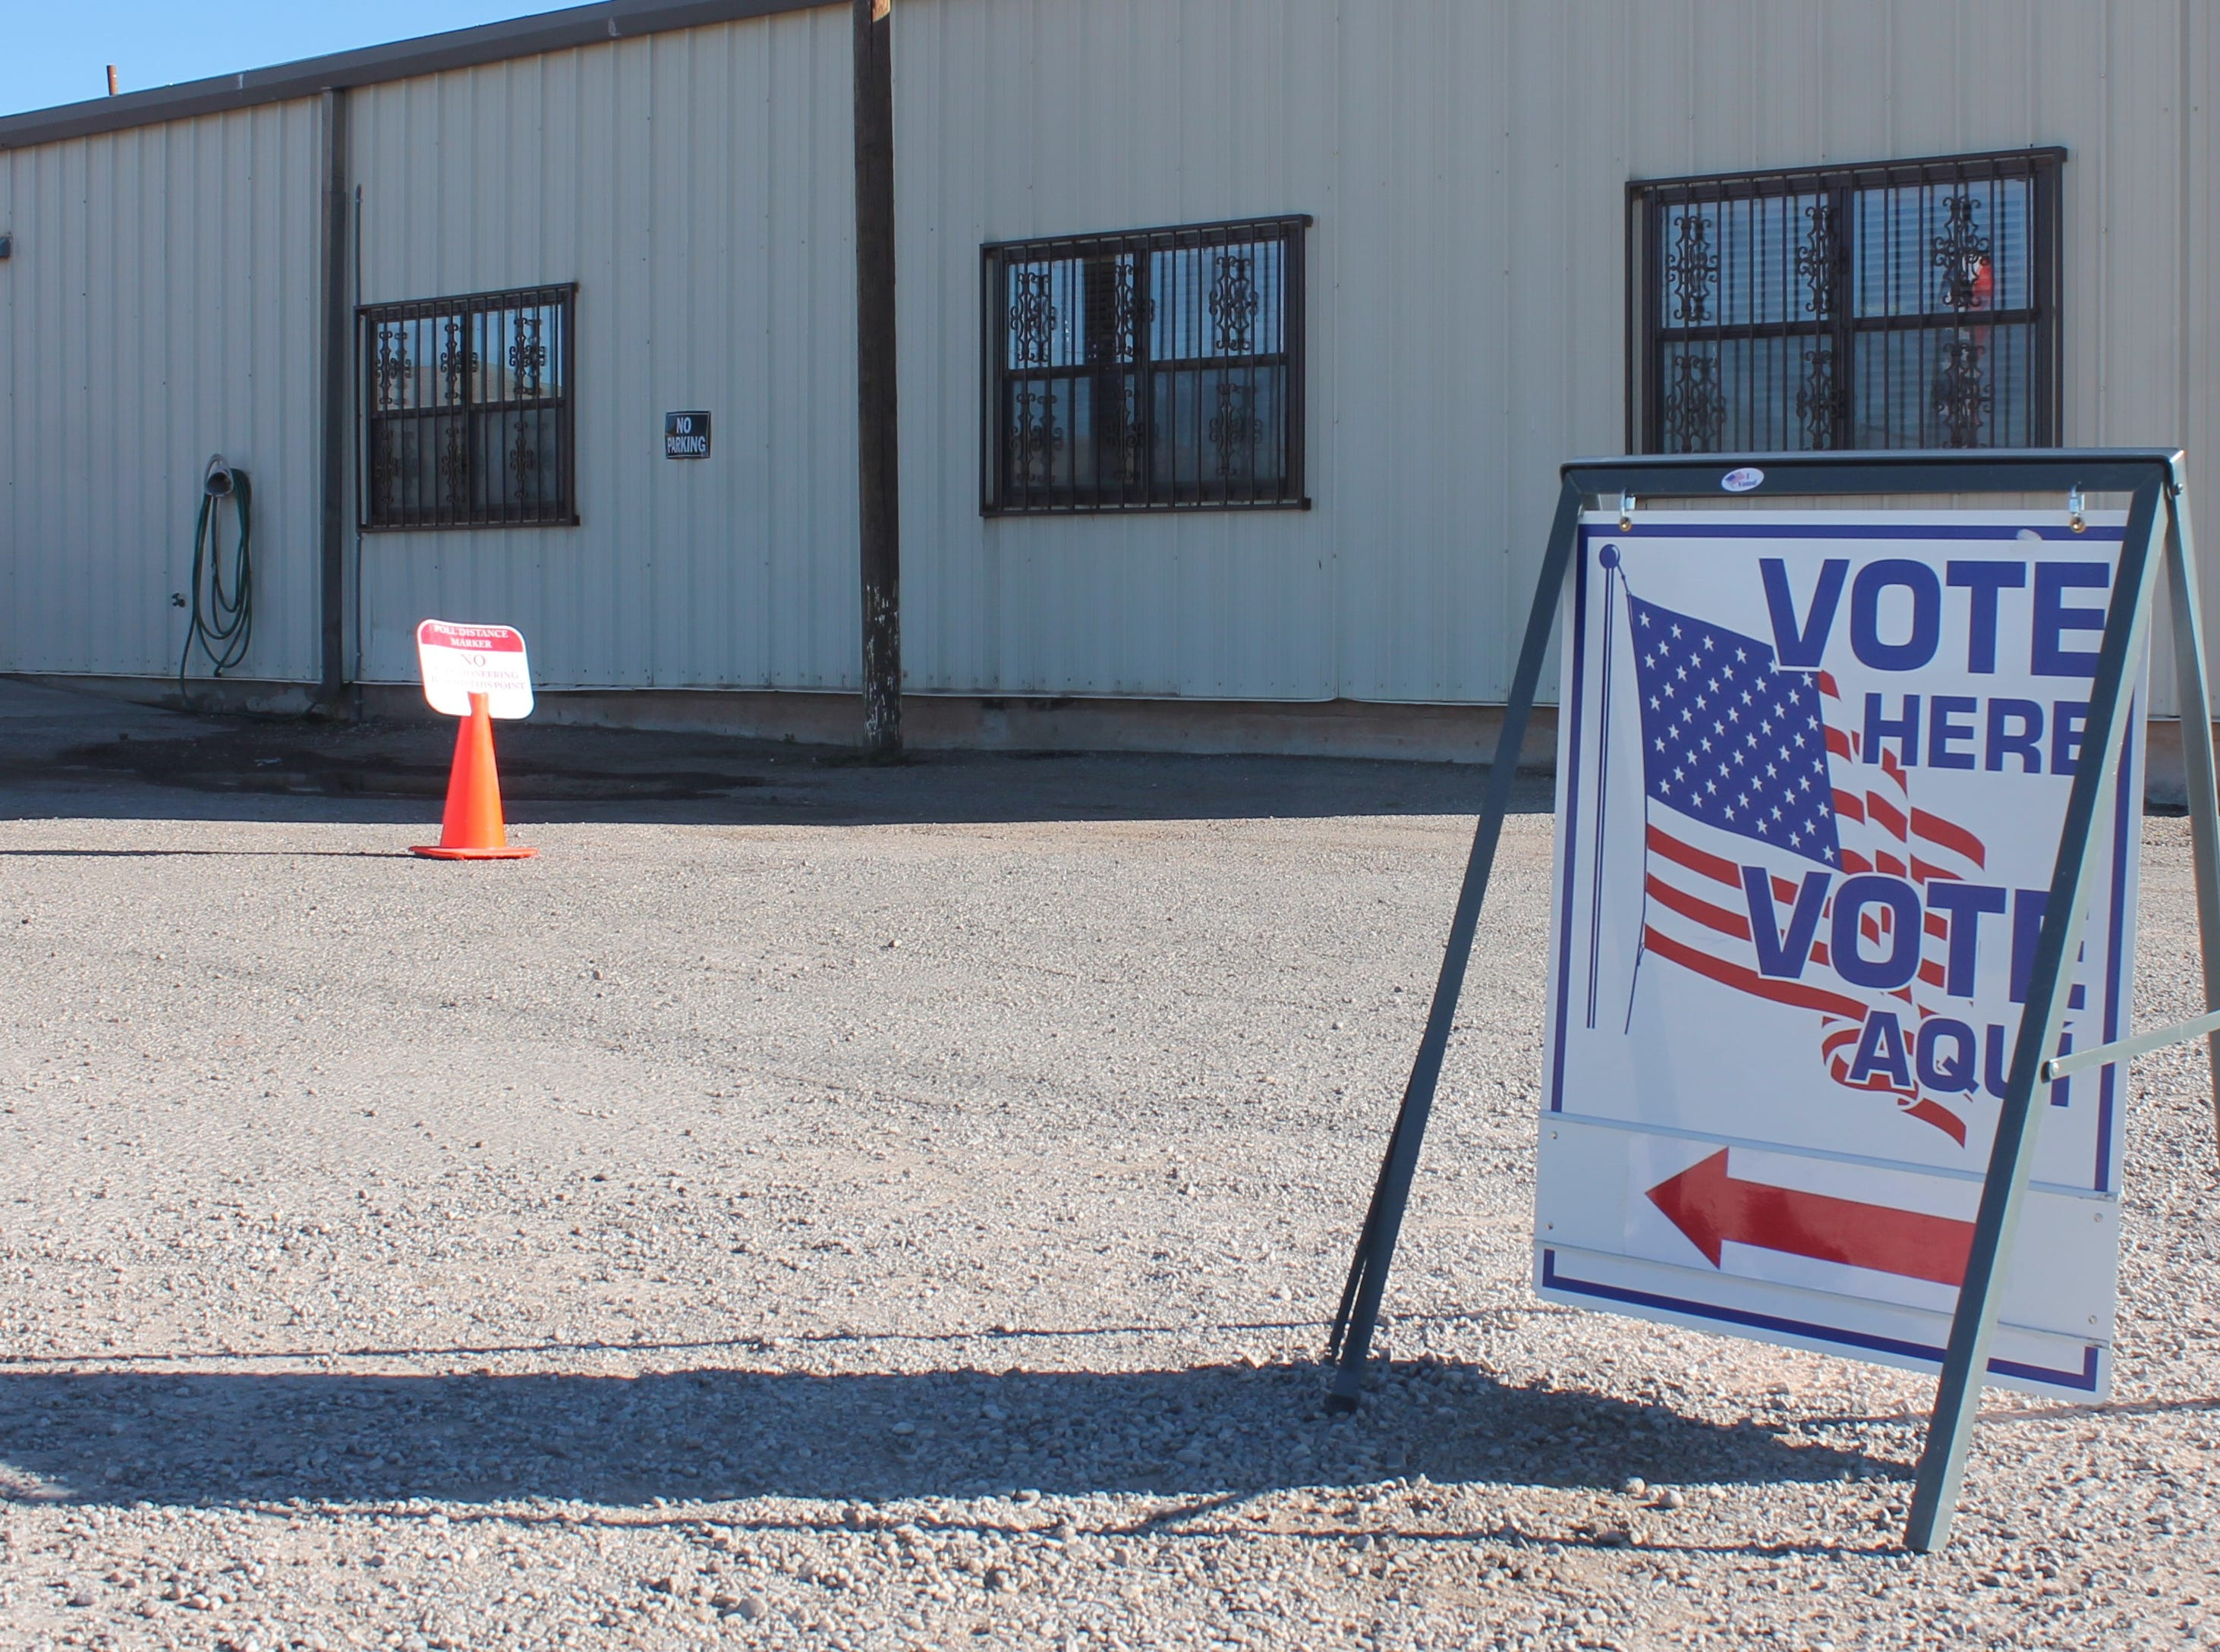 The Otero County Fairgrounds was one of three locations in Alamogordo where residents voted on Nov. 6.